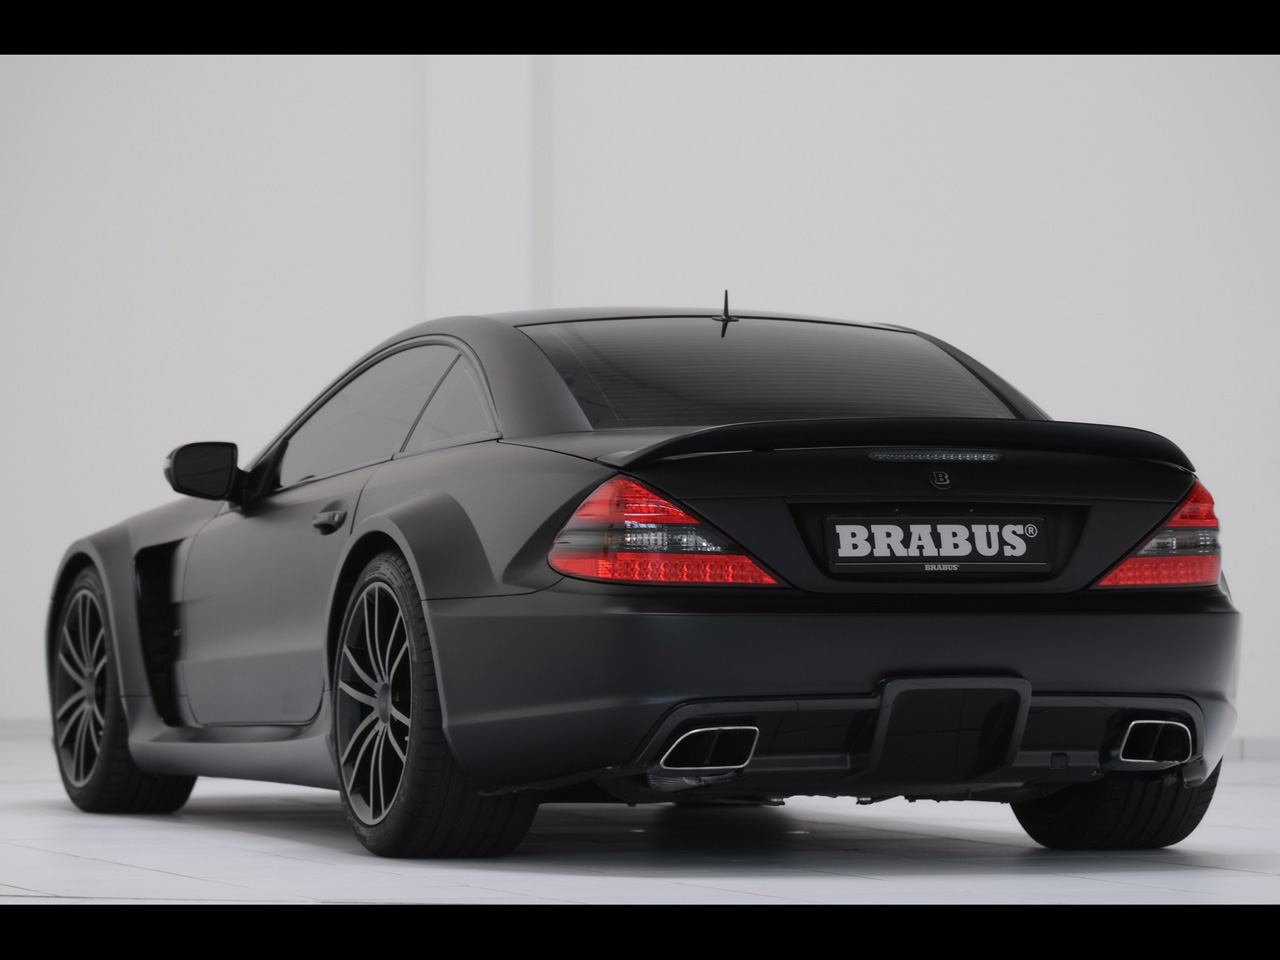 Dcgoldca 2010 brabus t65 rs mercedes benz sl 65 amg black for Mercedes benz brabus amg